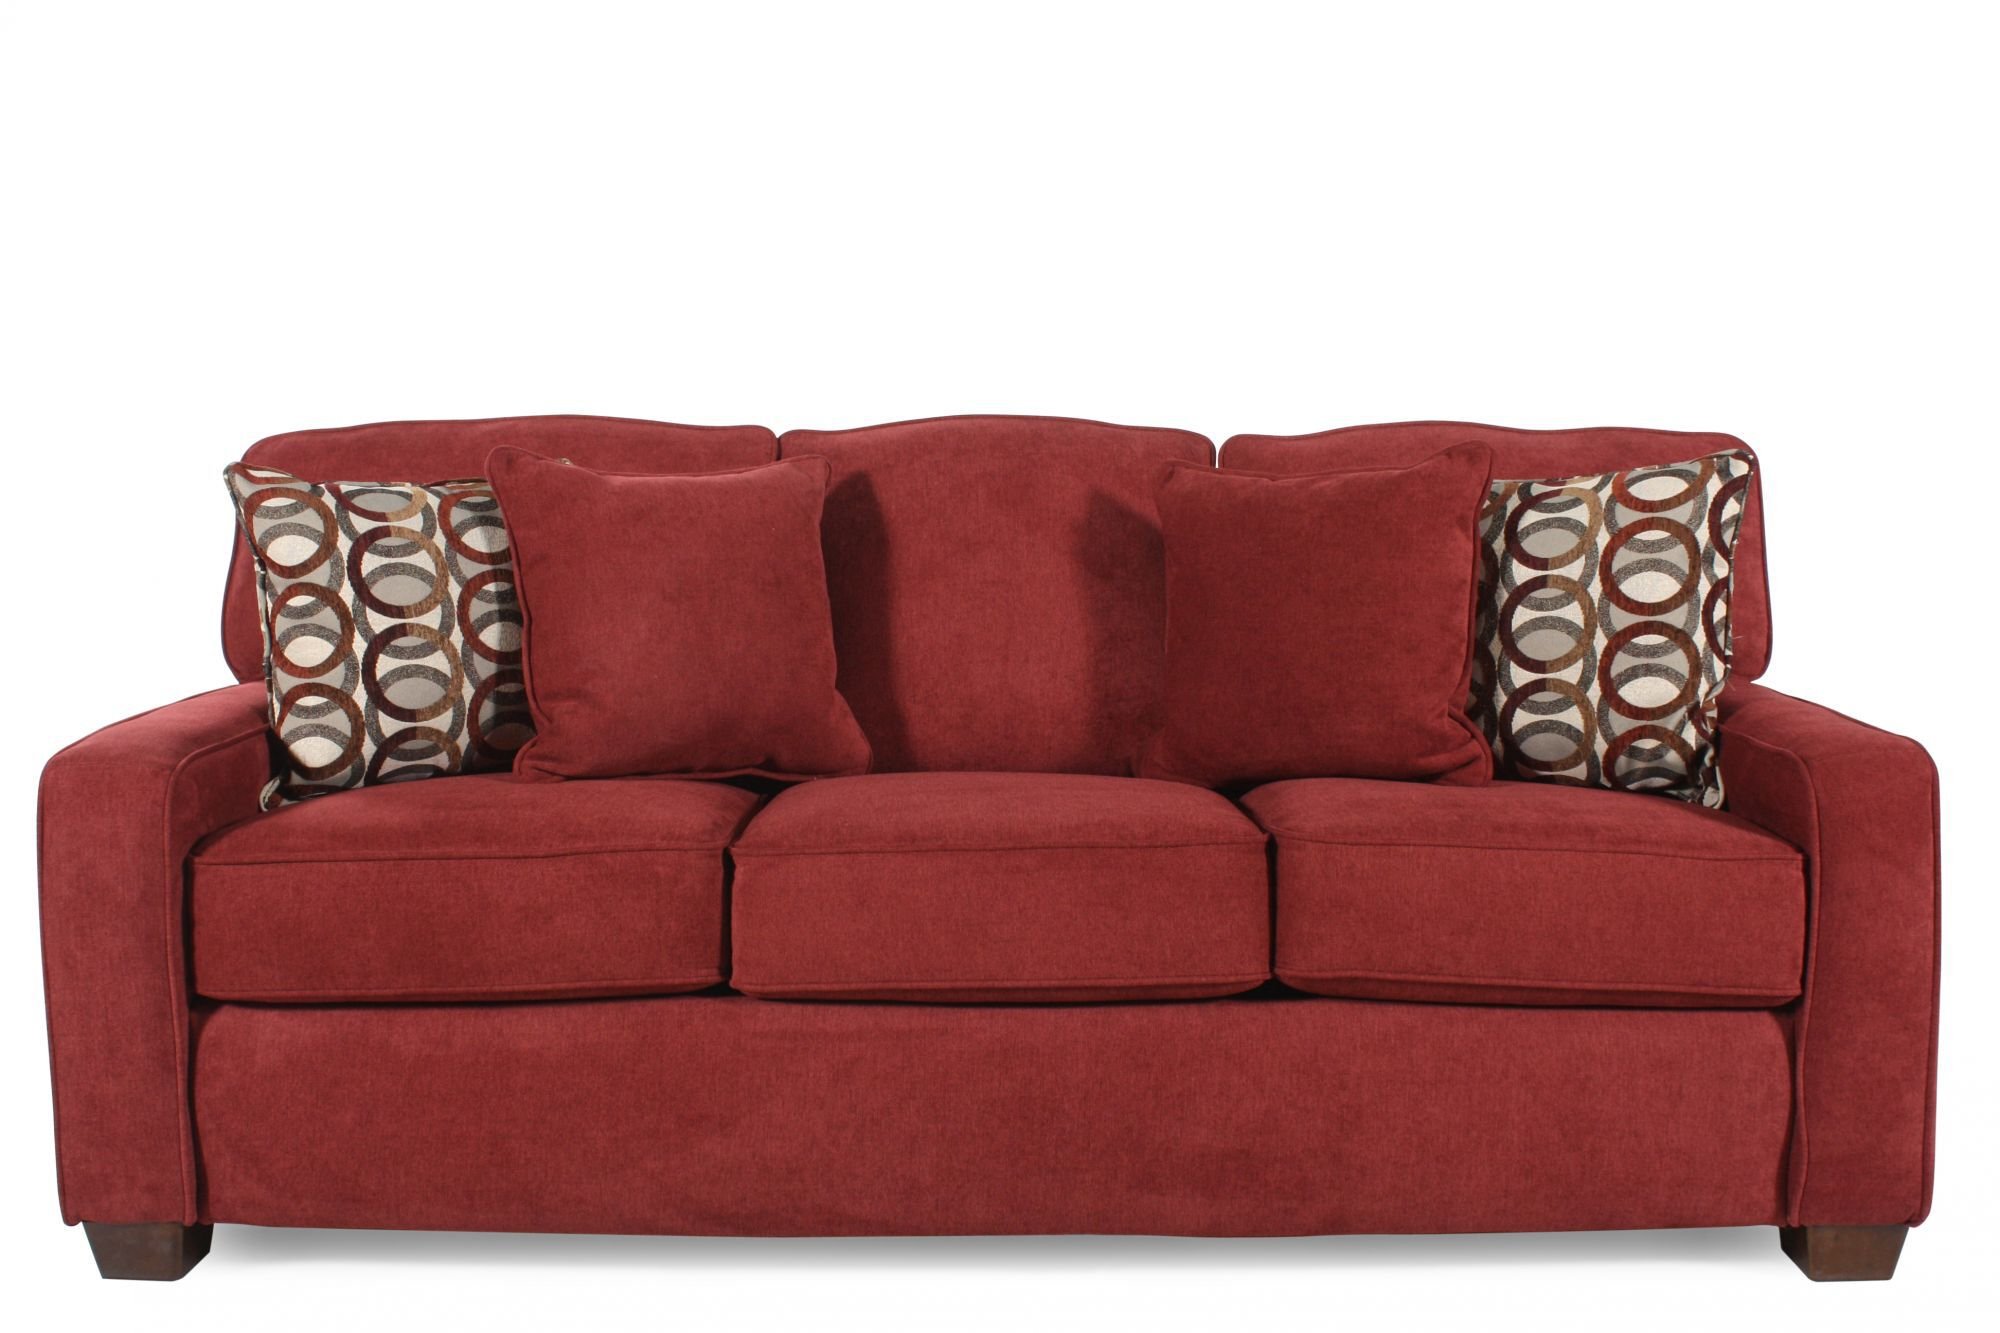 I Rest Casual 82 Quot Queen Sleeper Sofa In Red Berry Mathis